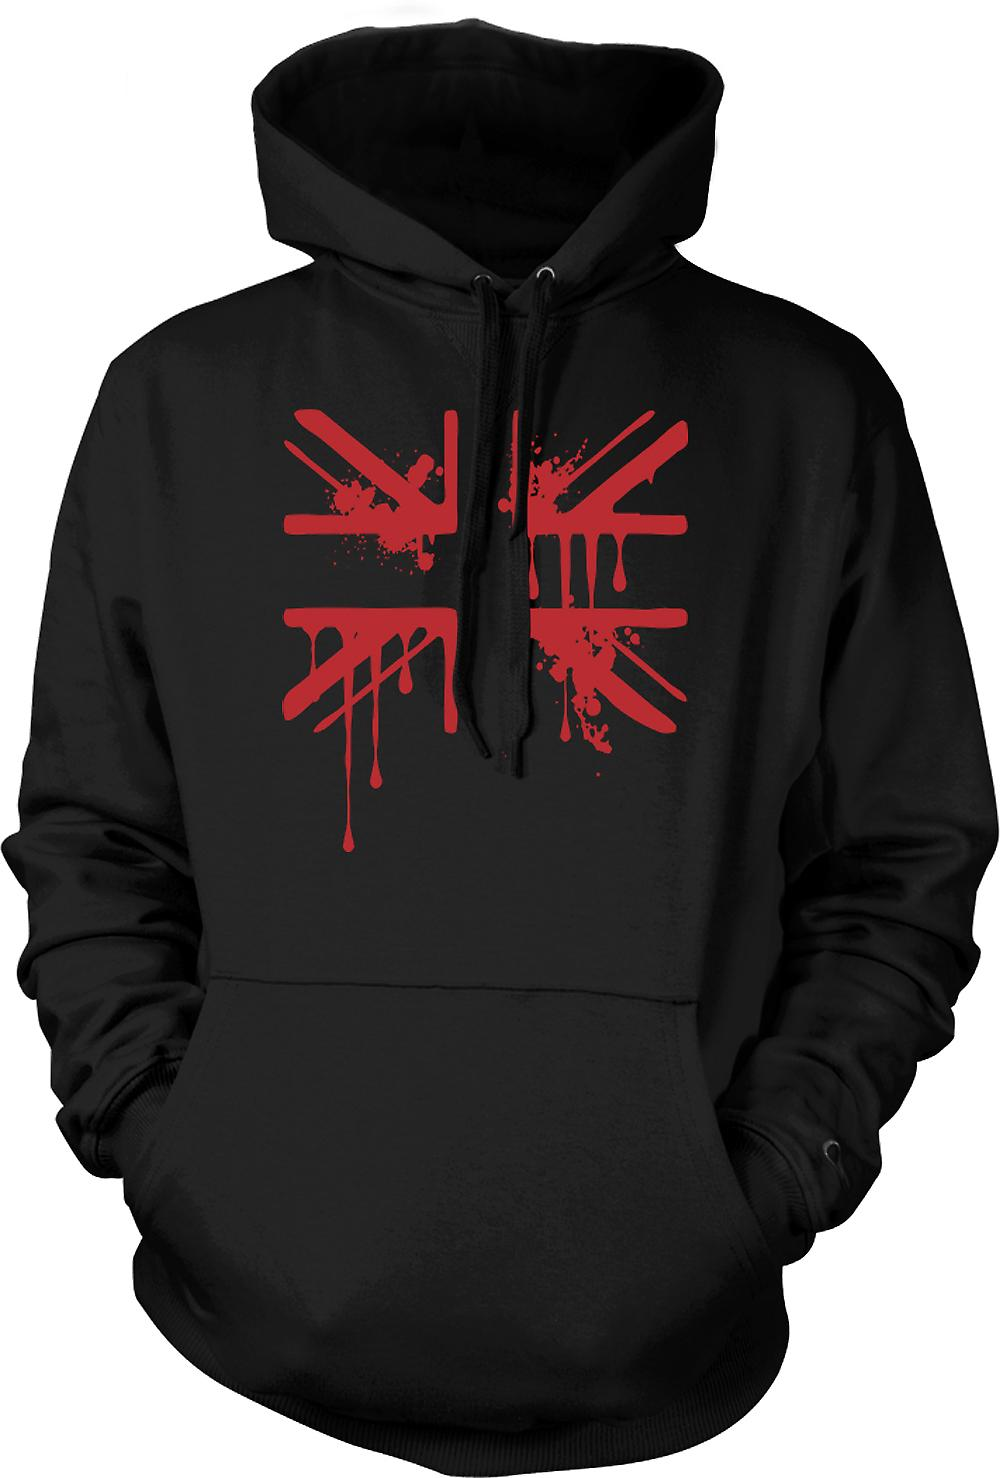 Mens Hoodie - Grunge Blood Union Jack